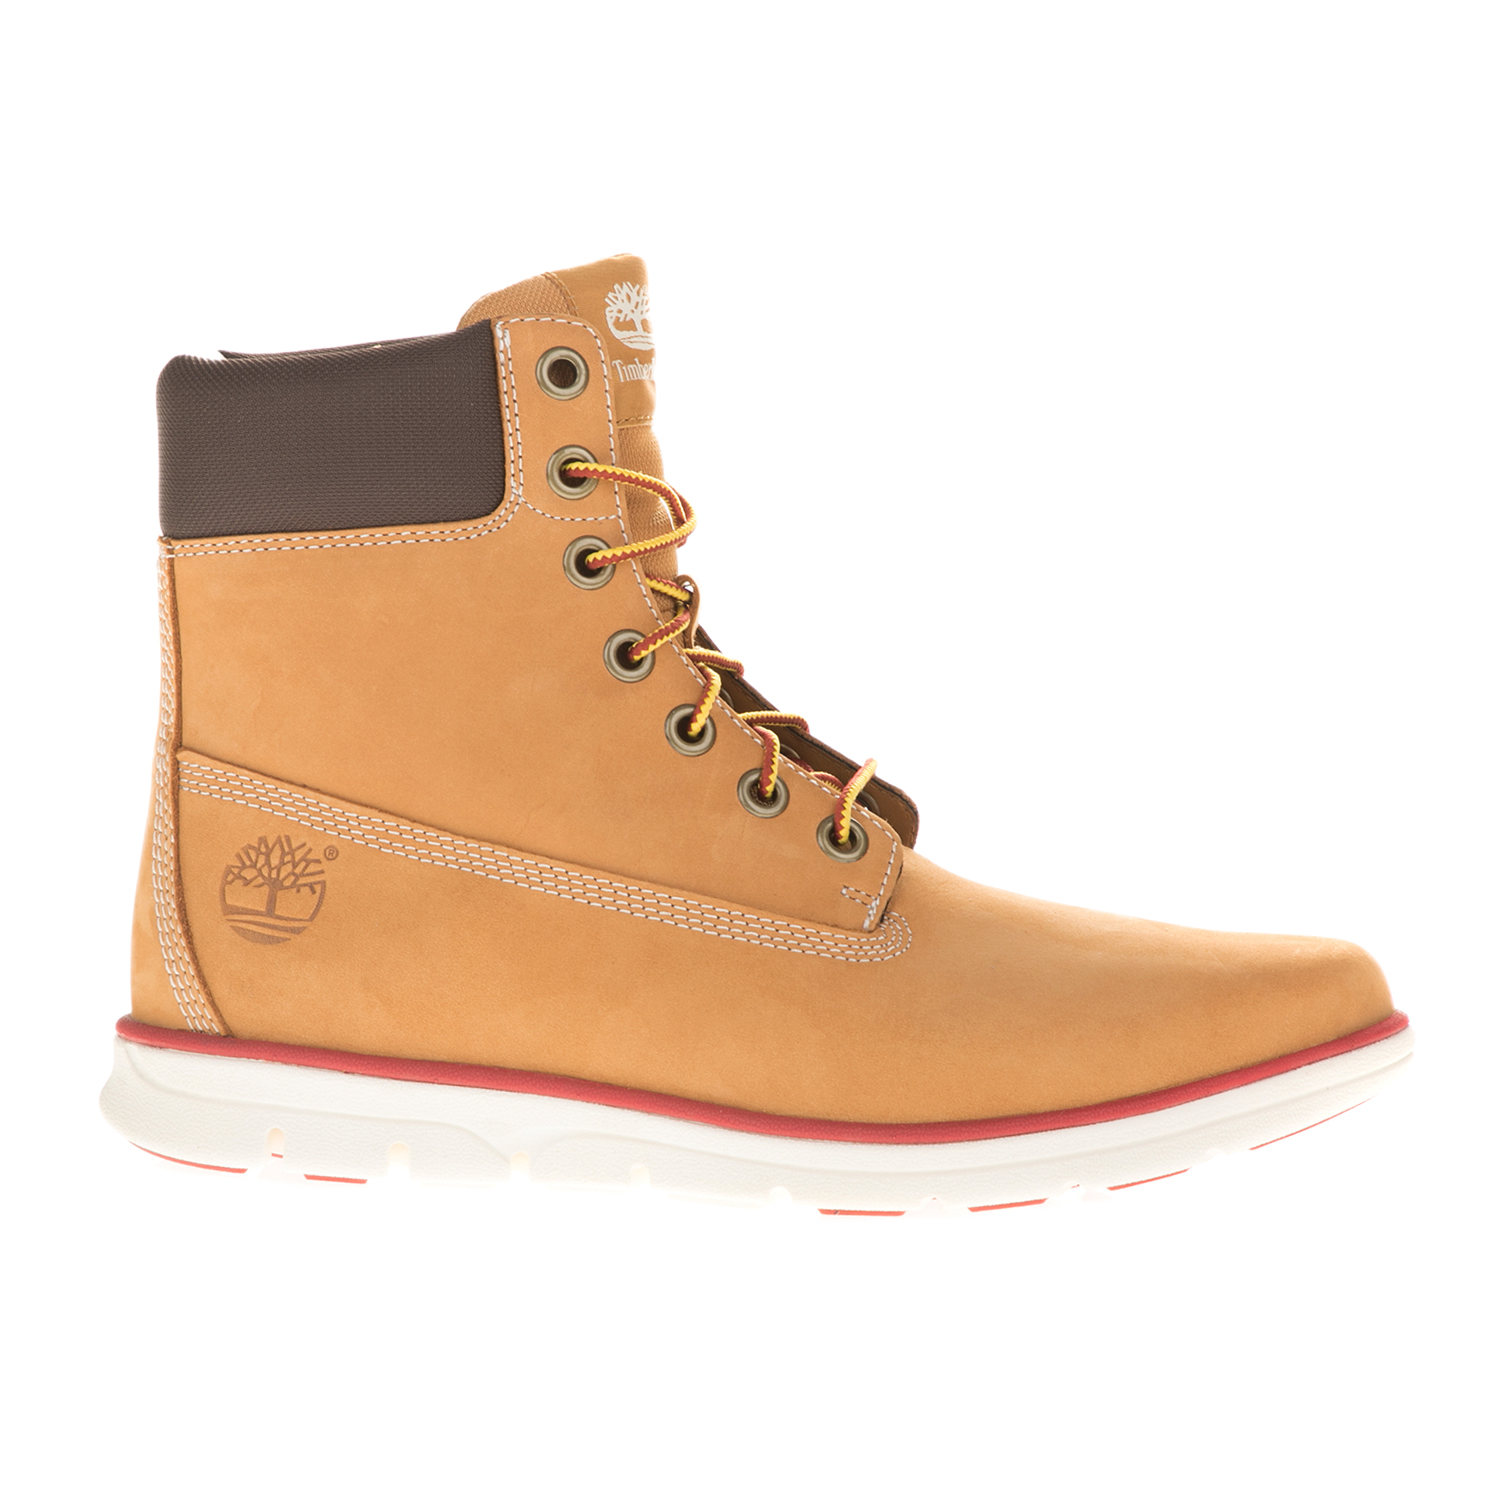 d85390f927b9 TIMBERLAND - Ανδρικά μποτάκια TIMBERLAND BRADSTREET 6 IN κίτρινα